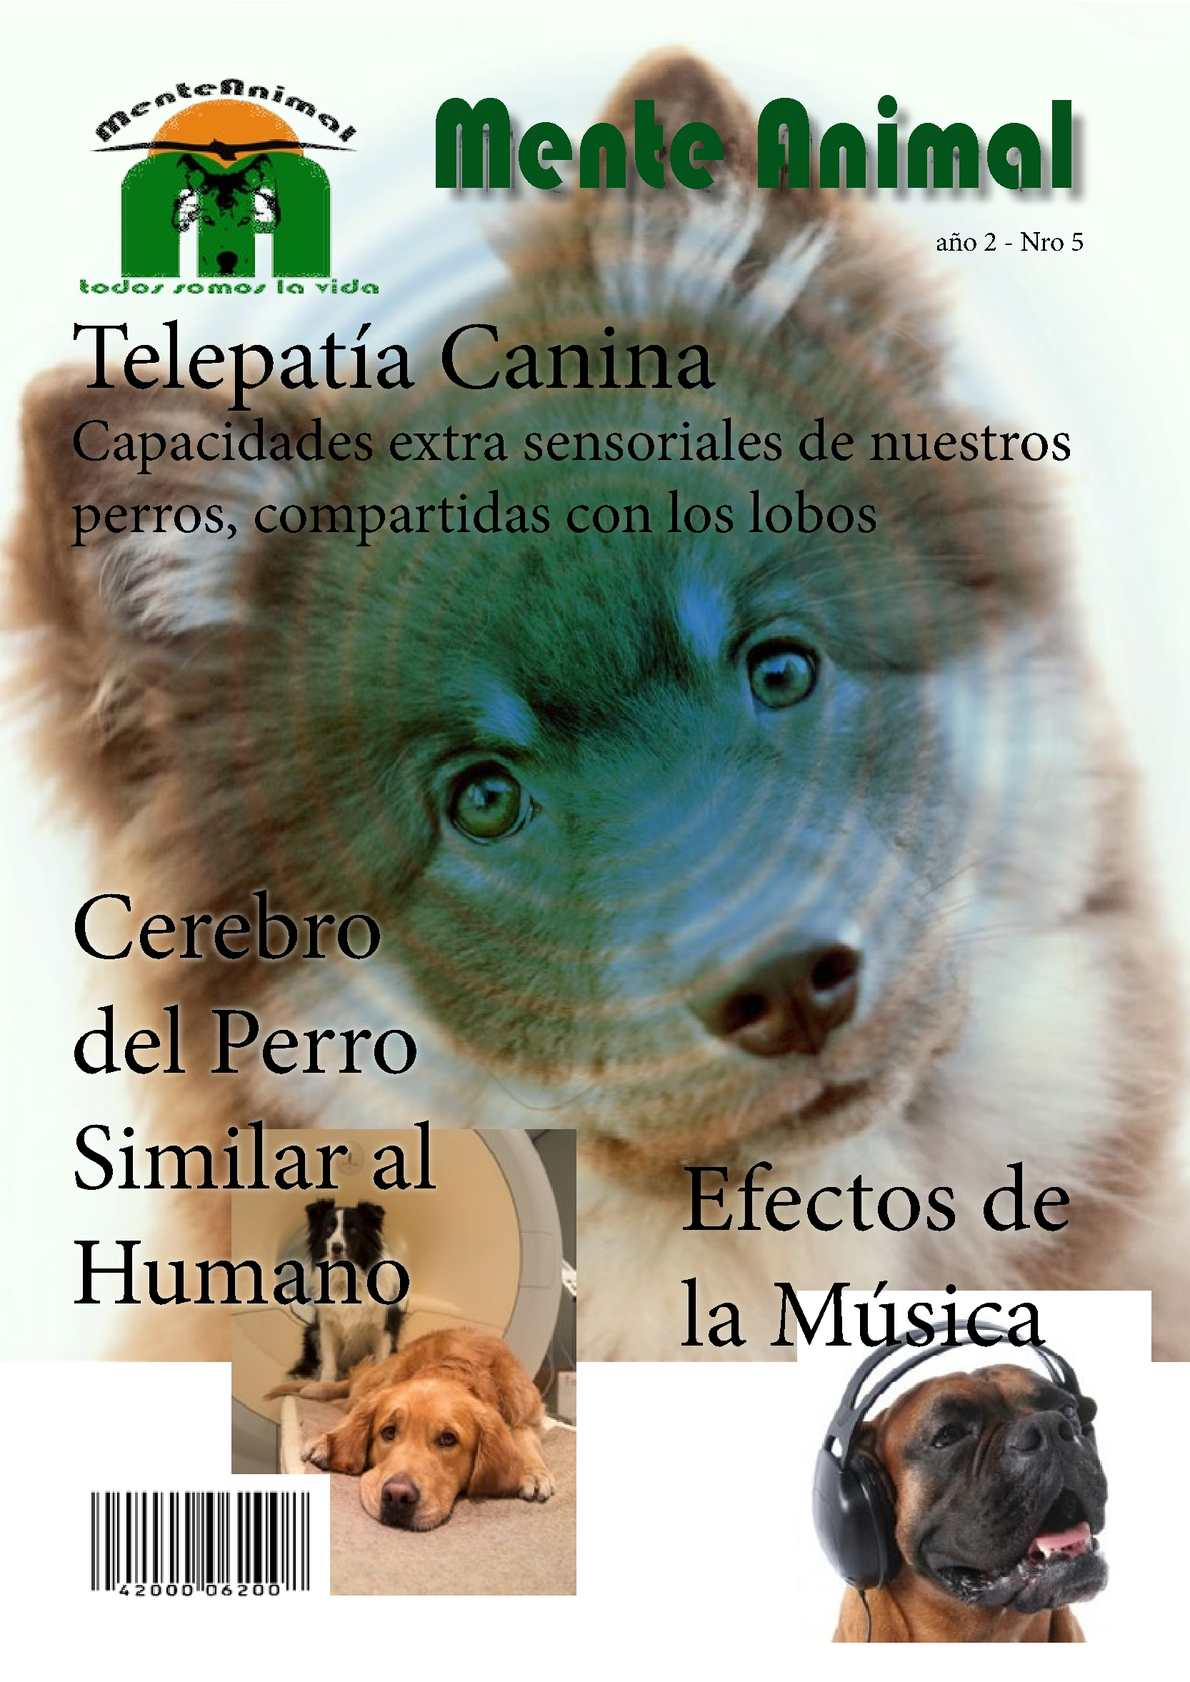 Calaméo - Revista Mente Animal Nro 5